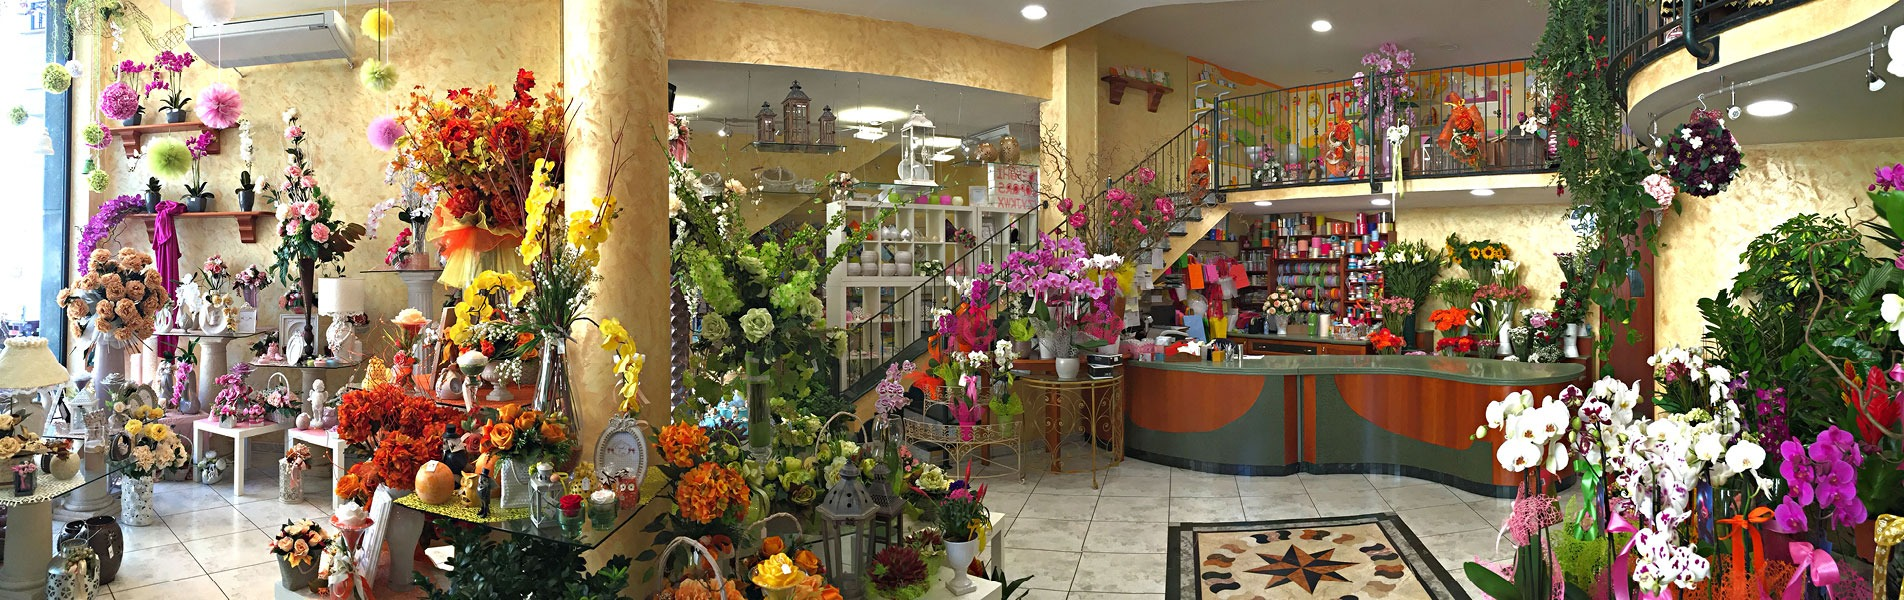 Negozio-Flower-Shop_1